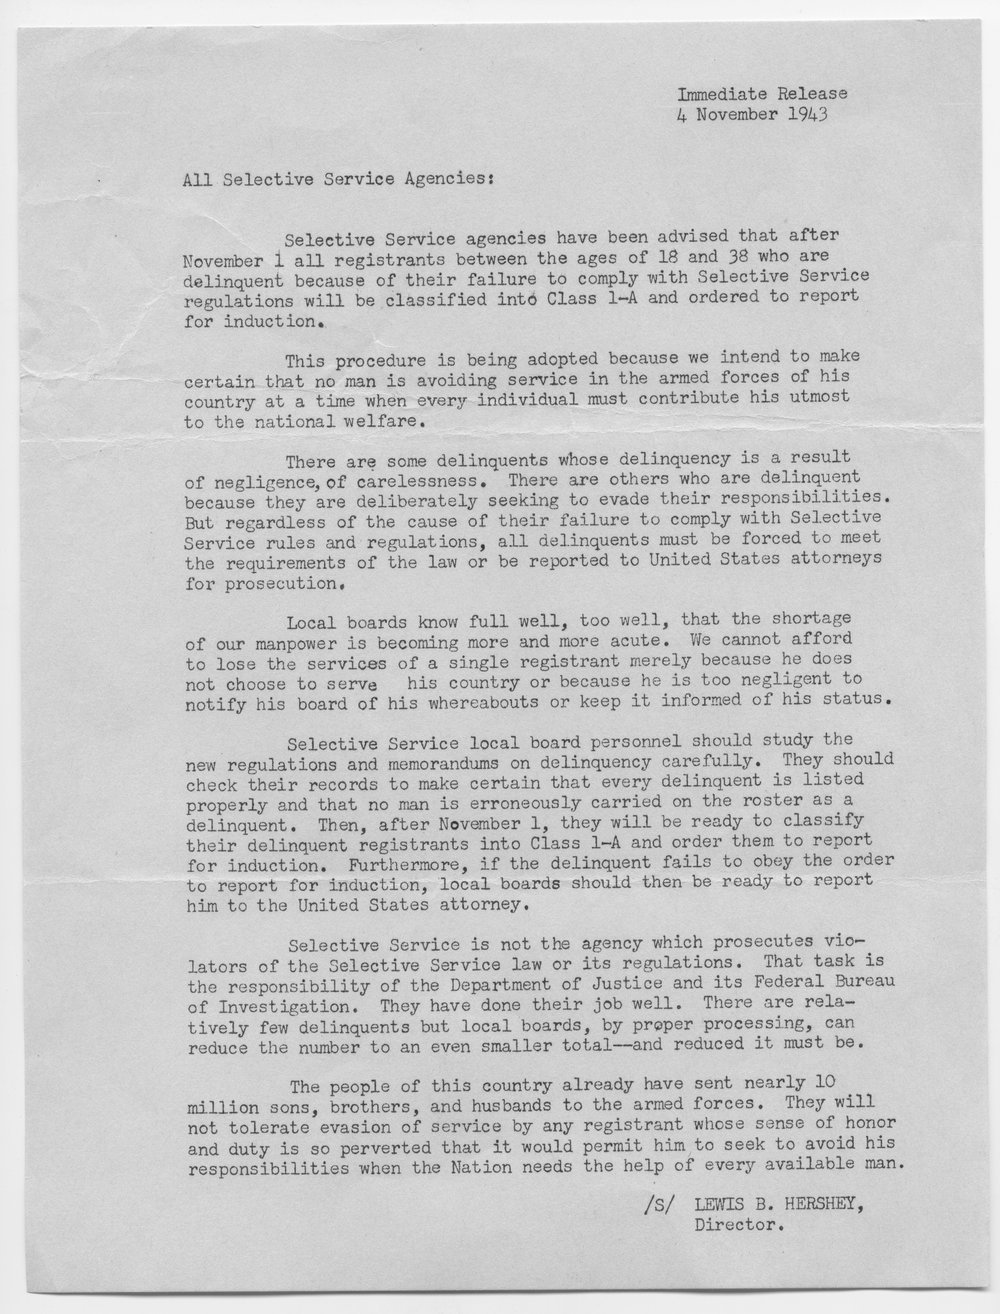 Lewis B. Hershey to all Selective Service agencies